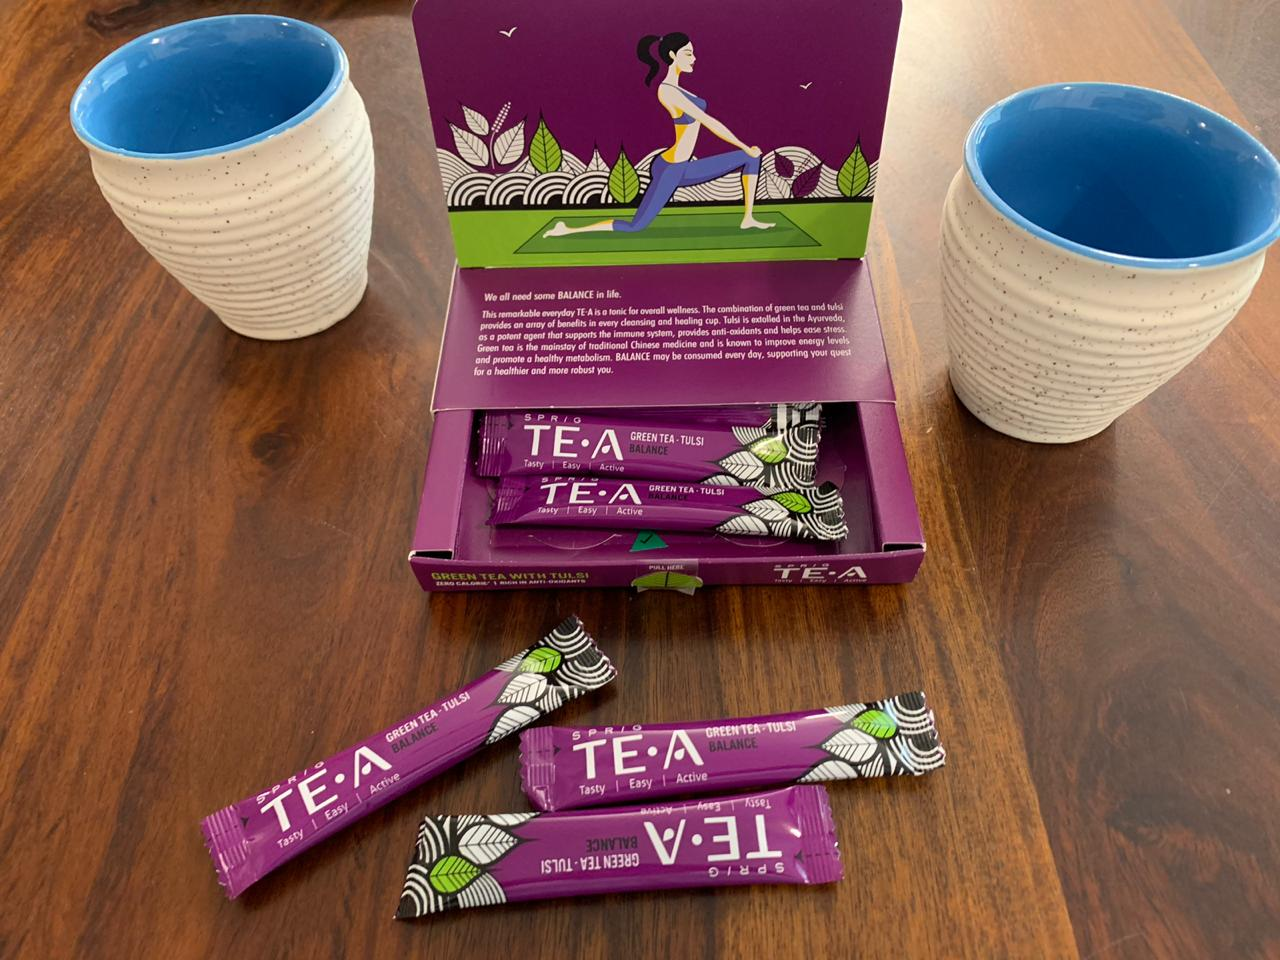 Sprig's 100% Green Tea With Tulsi: #FirstImpressions